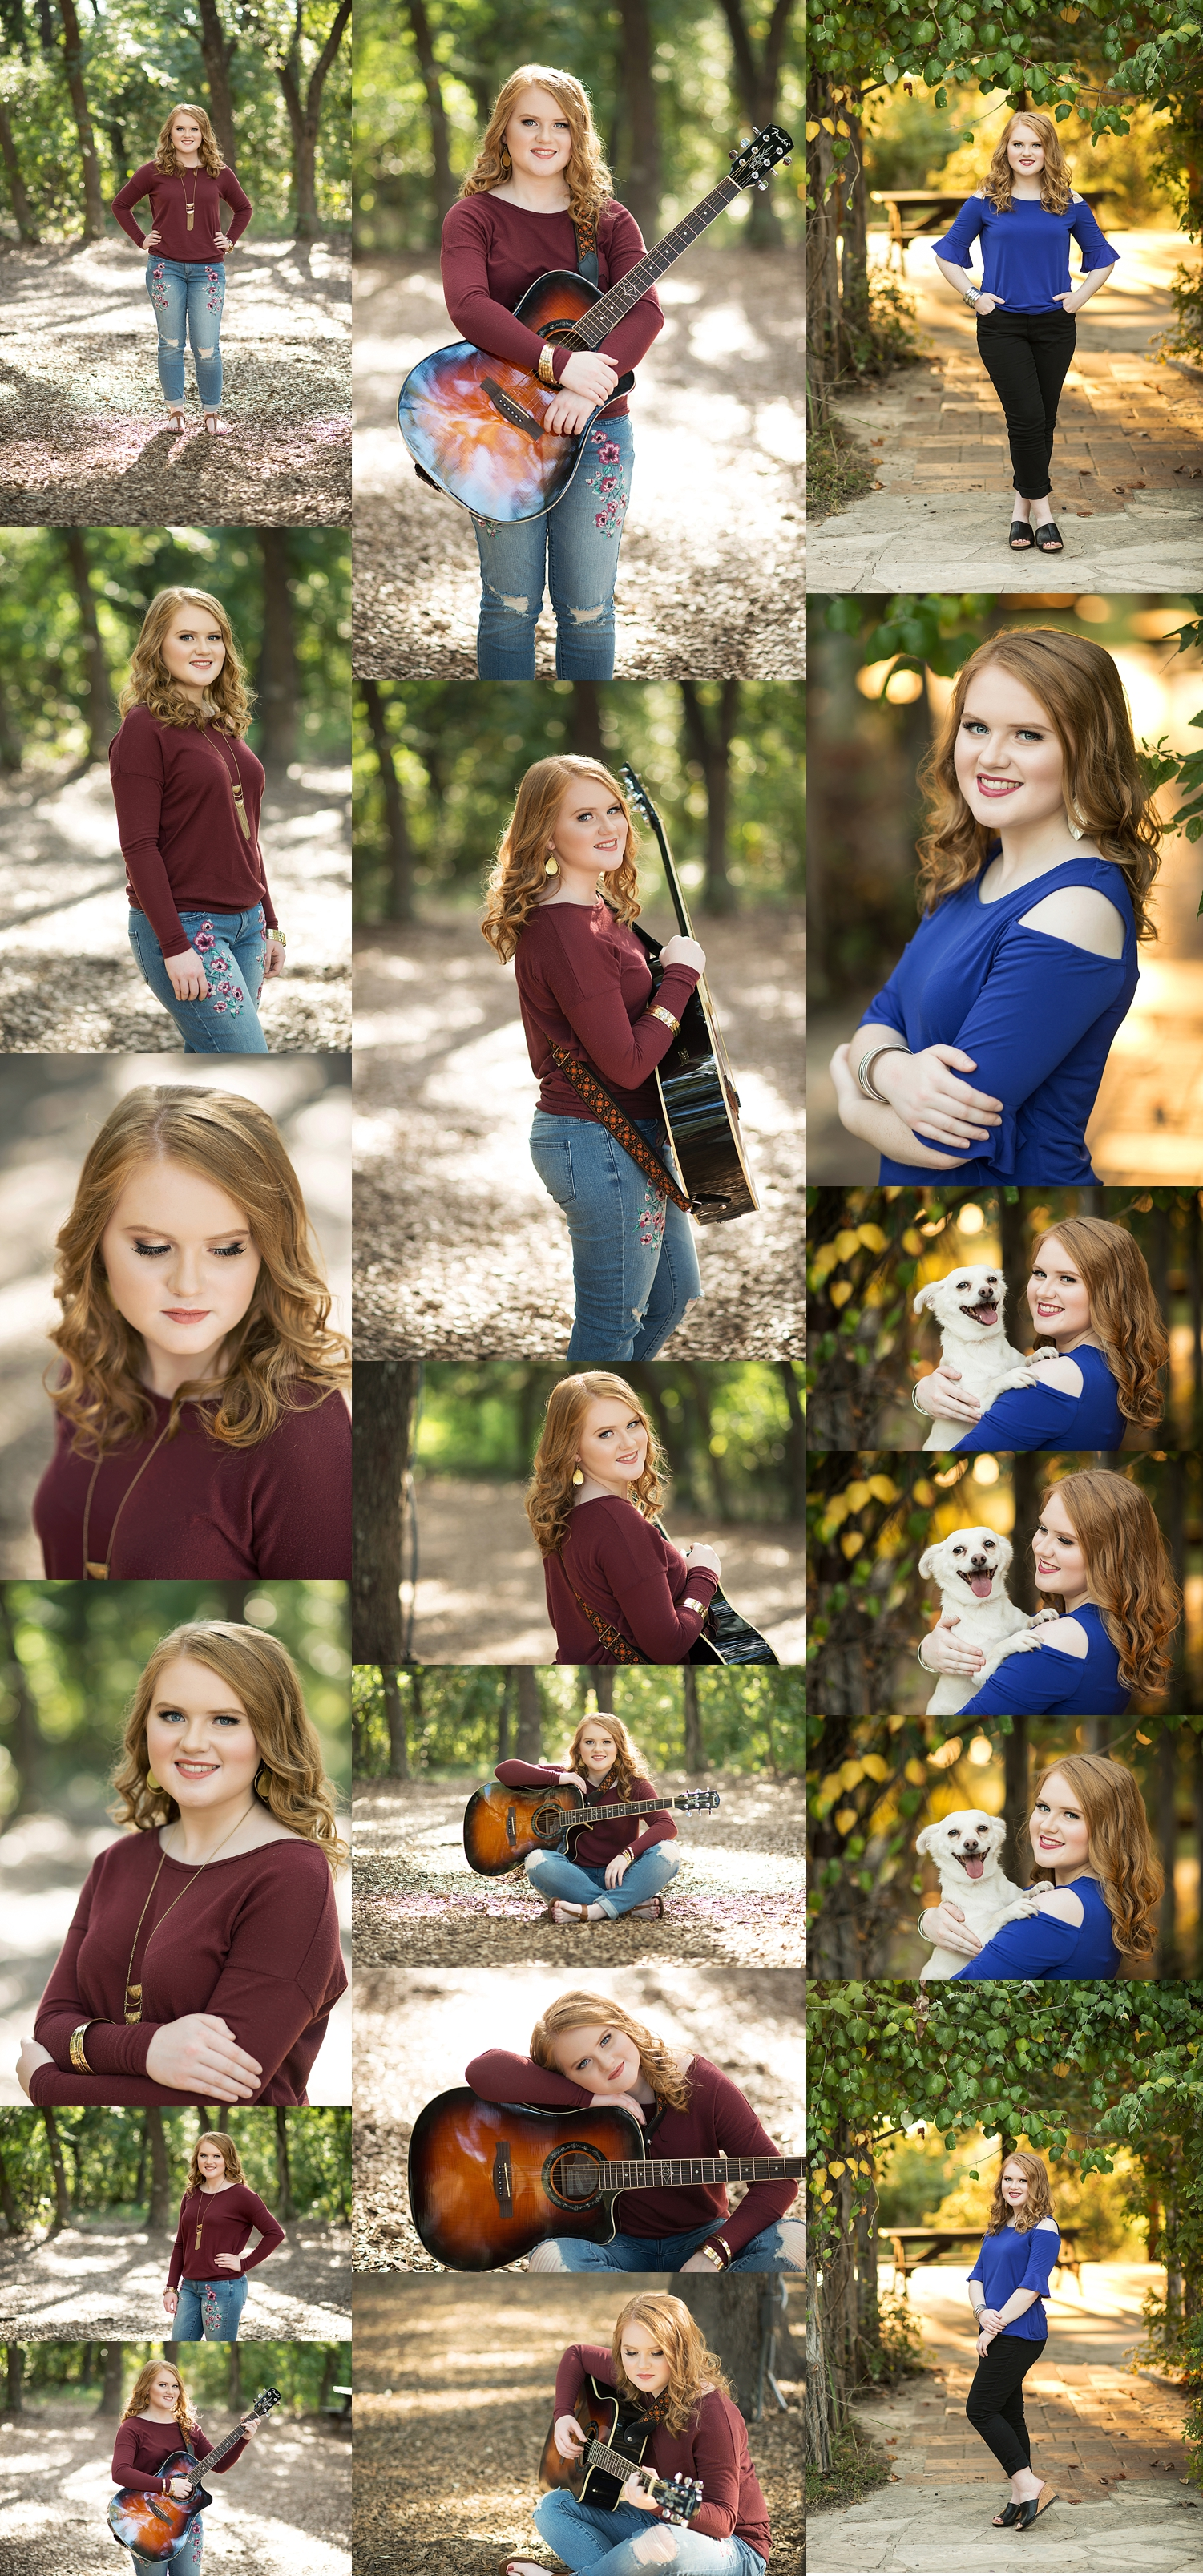 2Senior Portrait Photographer Boerne-San Antonio Staci Gahm_2509